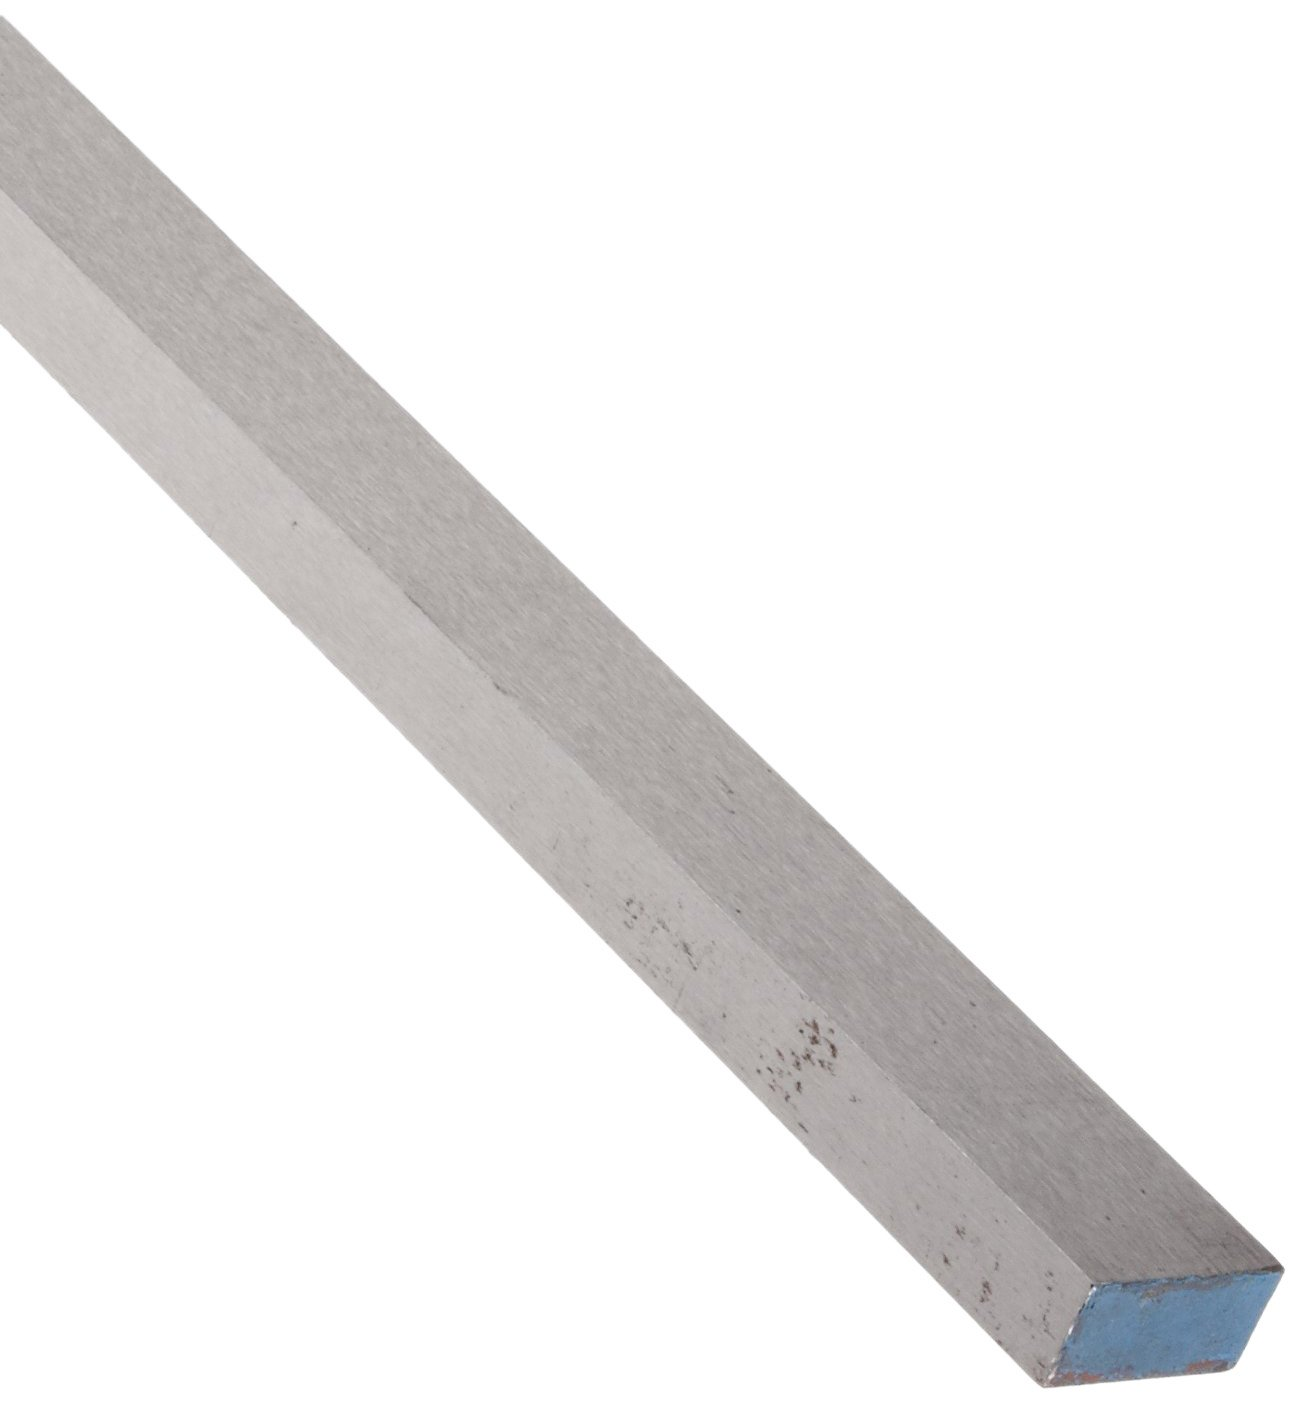 Air Hardened//Annealed//Precision Ground ASTM A681 A2 Tool Steel Rectangular Bar 2 Width Oversized Tolerance 5//32 Thickness 18 Length